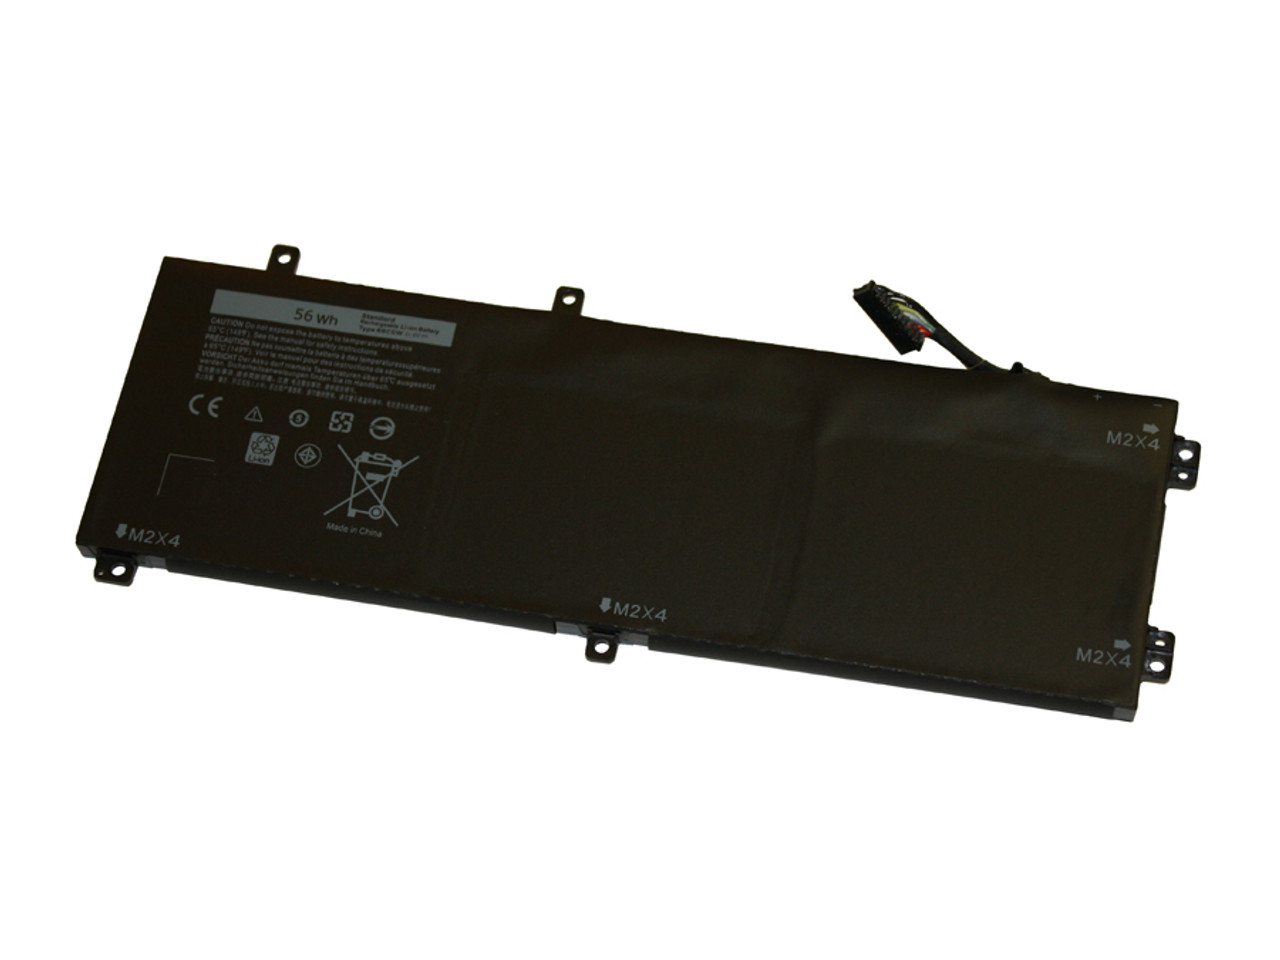 Battery for DELL XPS 15 9550, 15 9560, 15 9570; Precision 5510, 5520